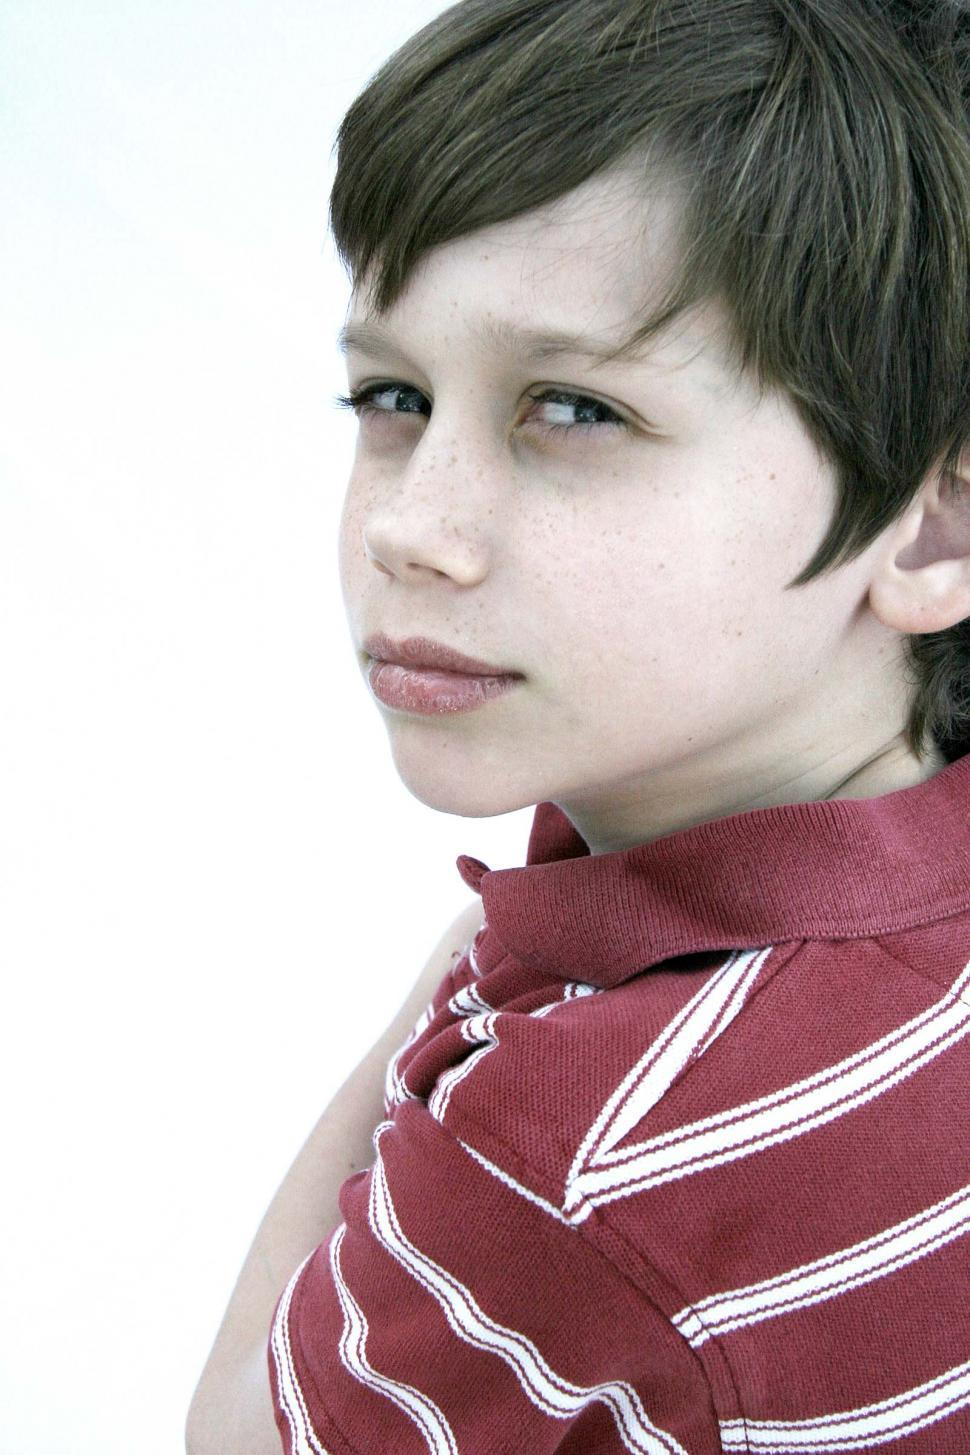 Download Free Stock Photo of Side eye from a little kid